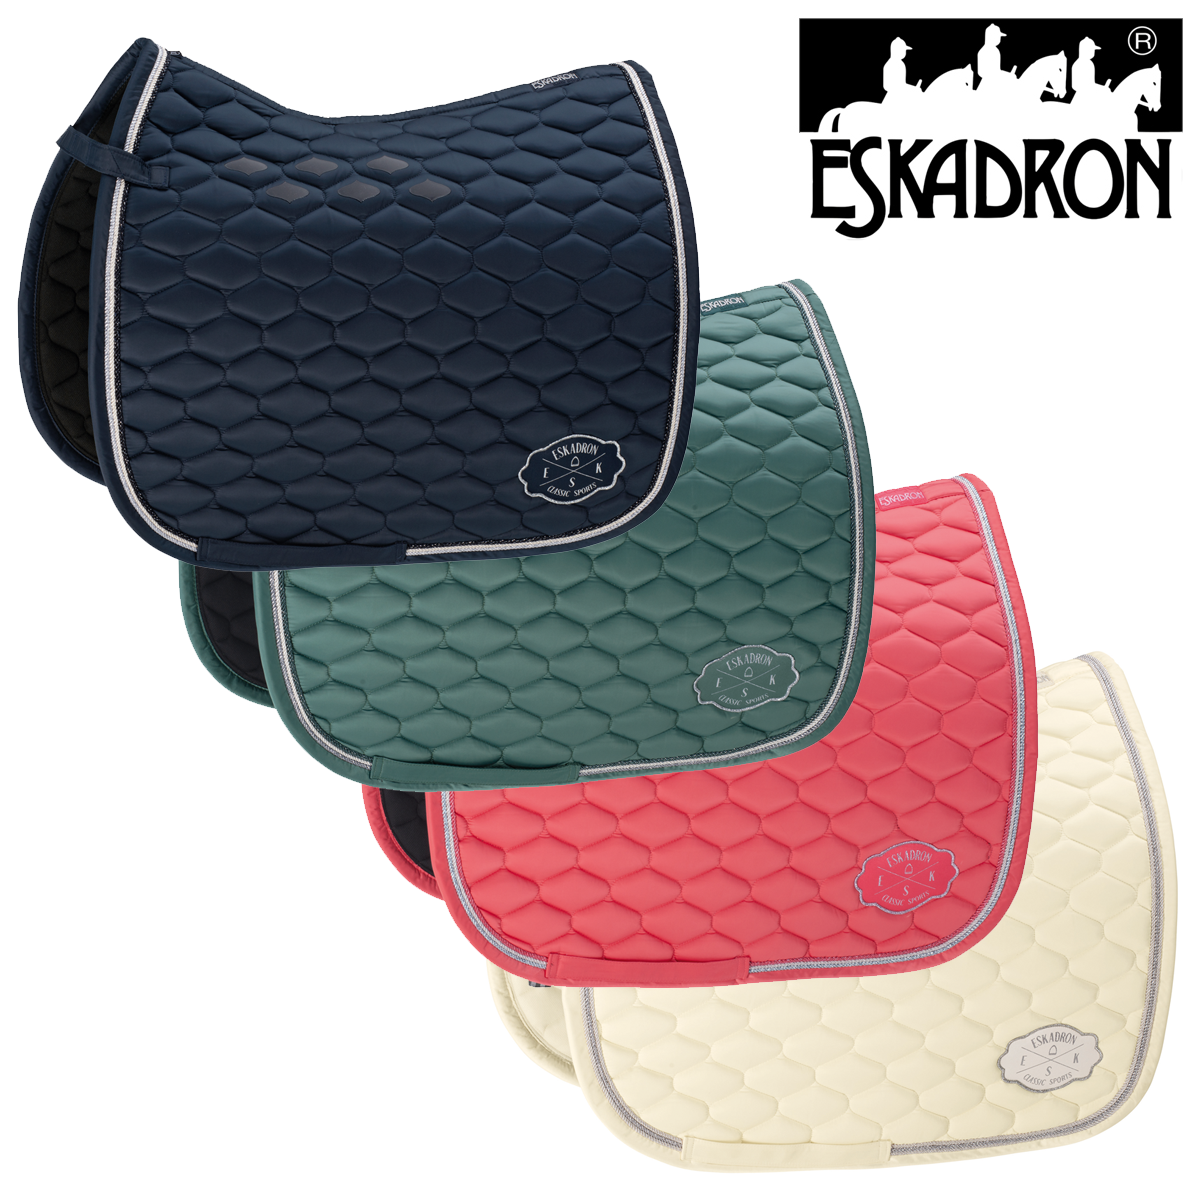 Eskadron Glossy Emblem Saddlecloth (Classic Sports Ltd. SS19) FREE UK Shipping